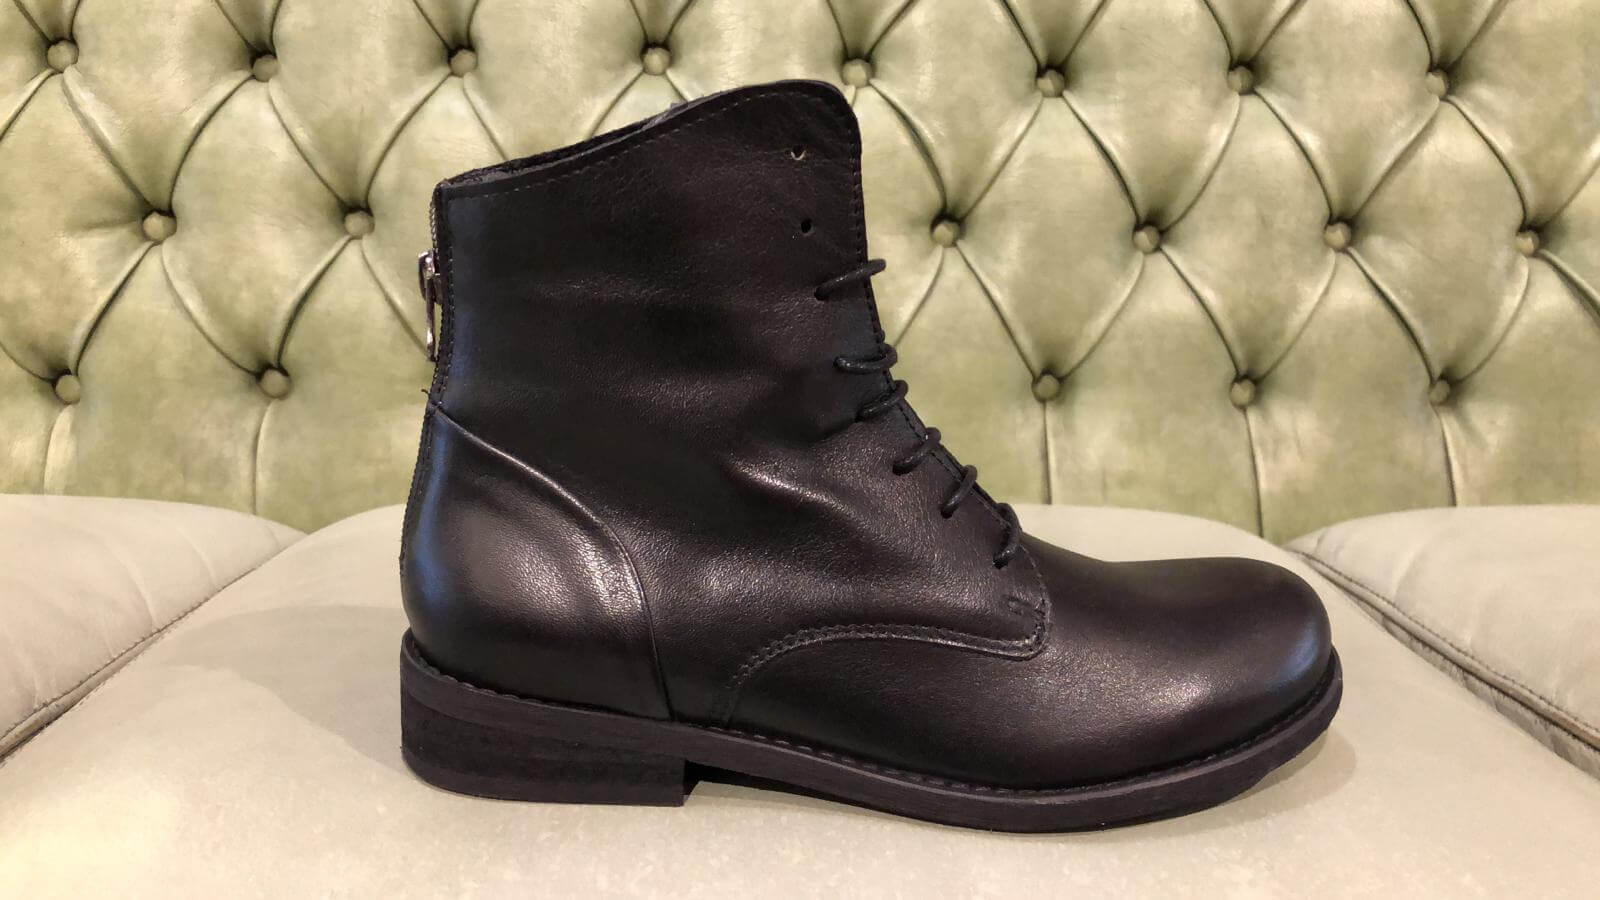 Black low boots for women